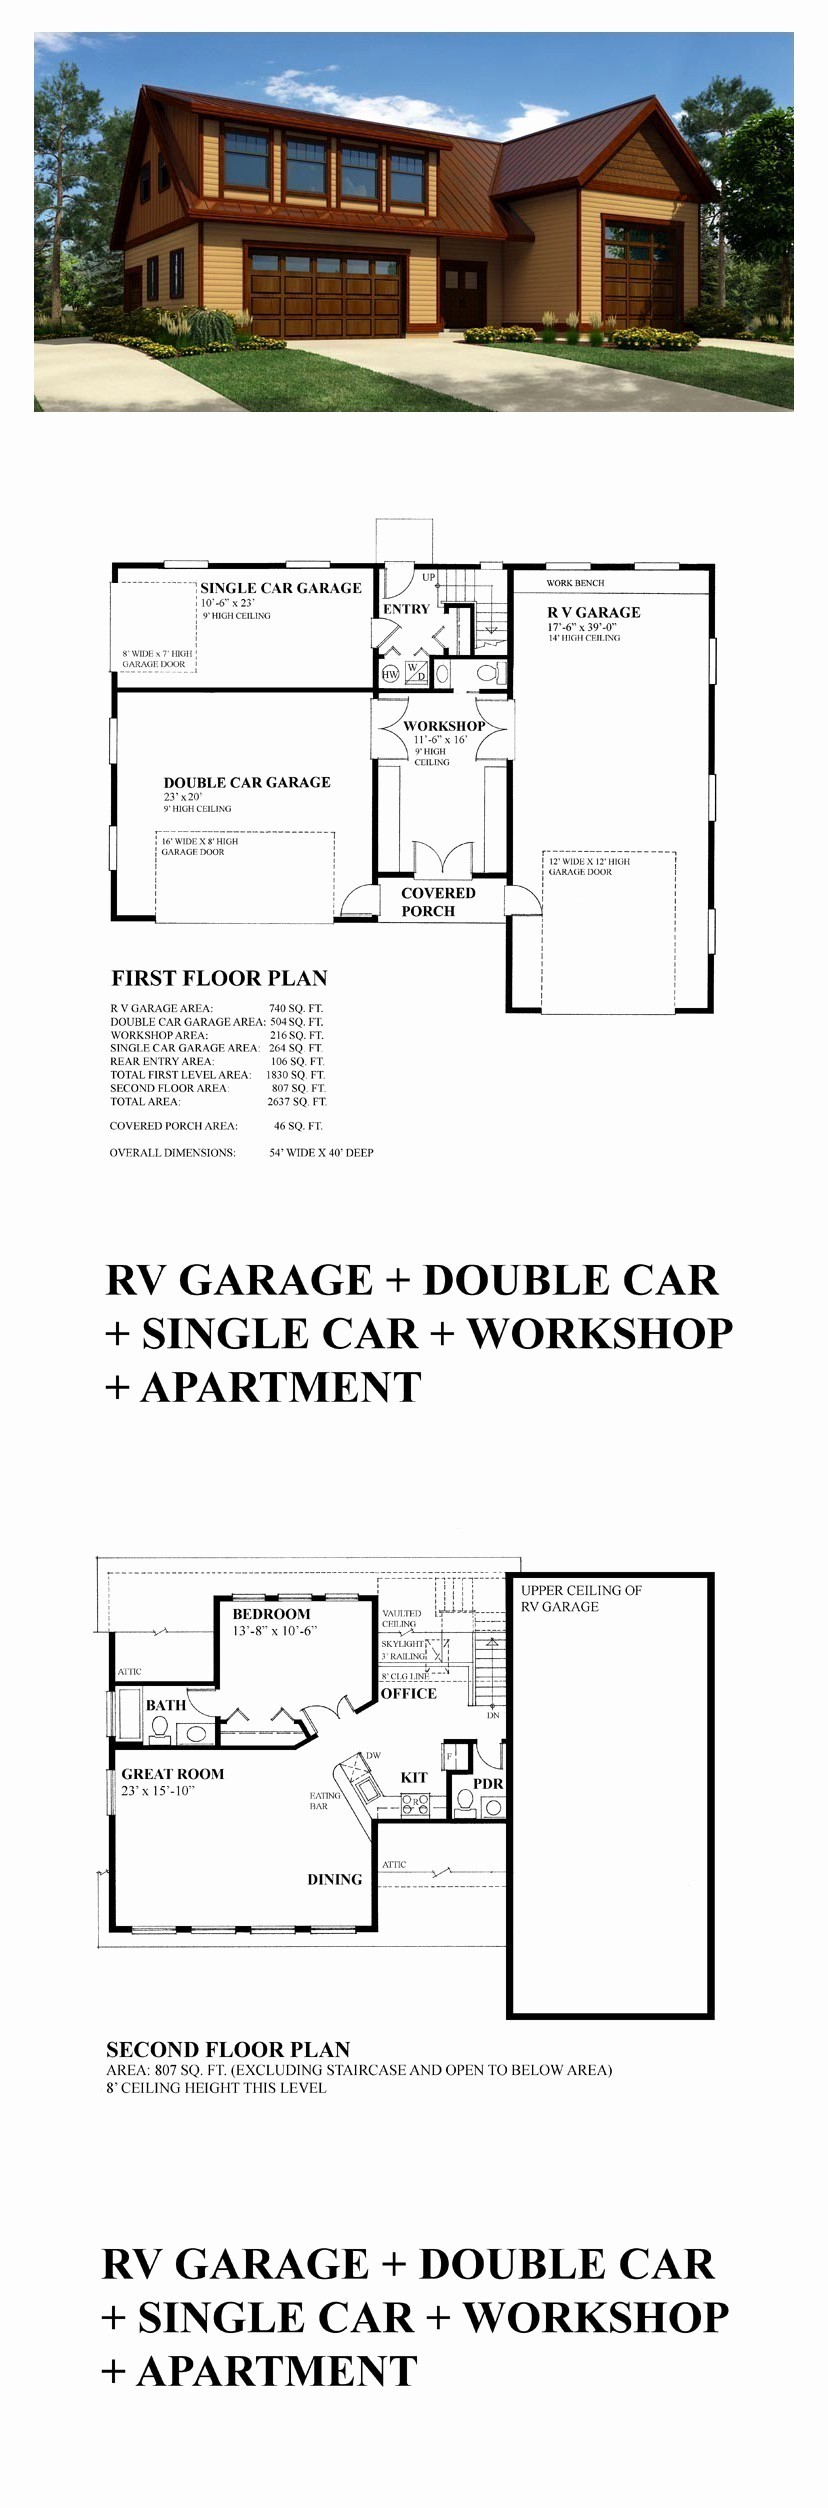 26 Lovely Jayco Camper Trailer Floor Plans - Dirtotal - Dirtotal - Jayco Camper Trailer Wiring Diagram